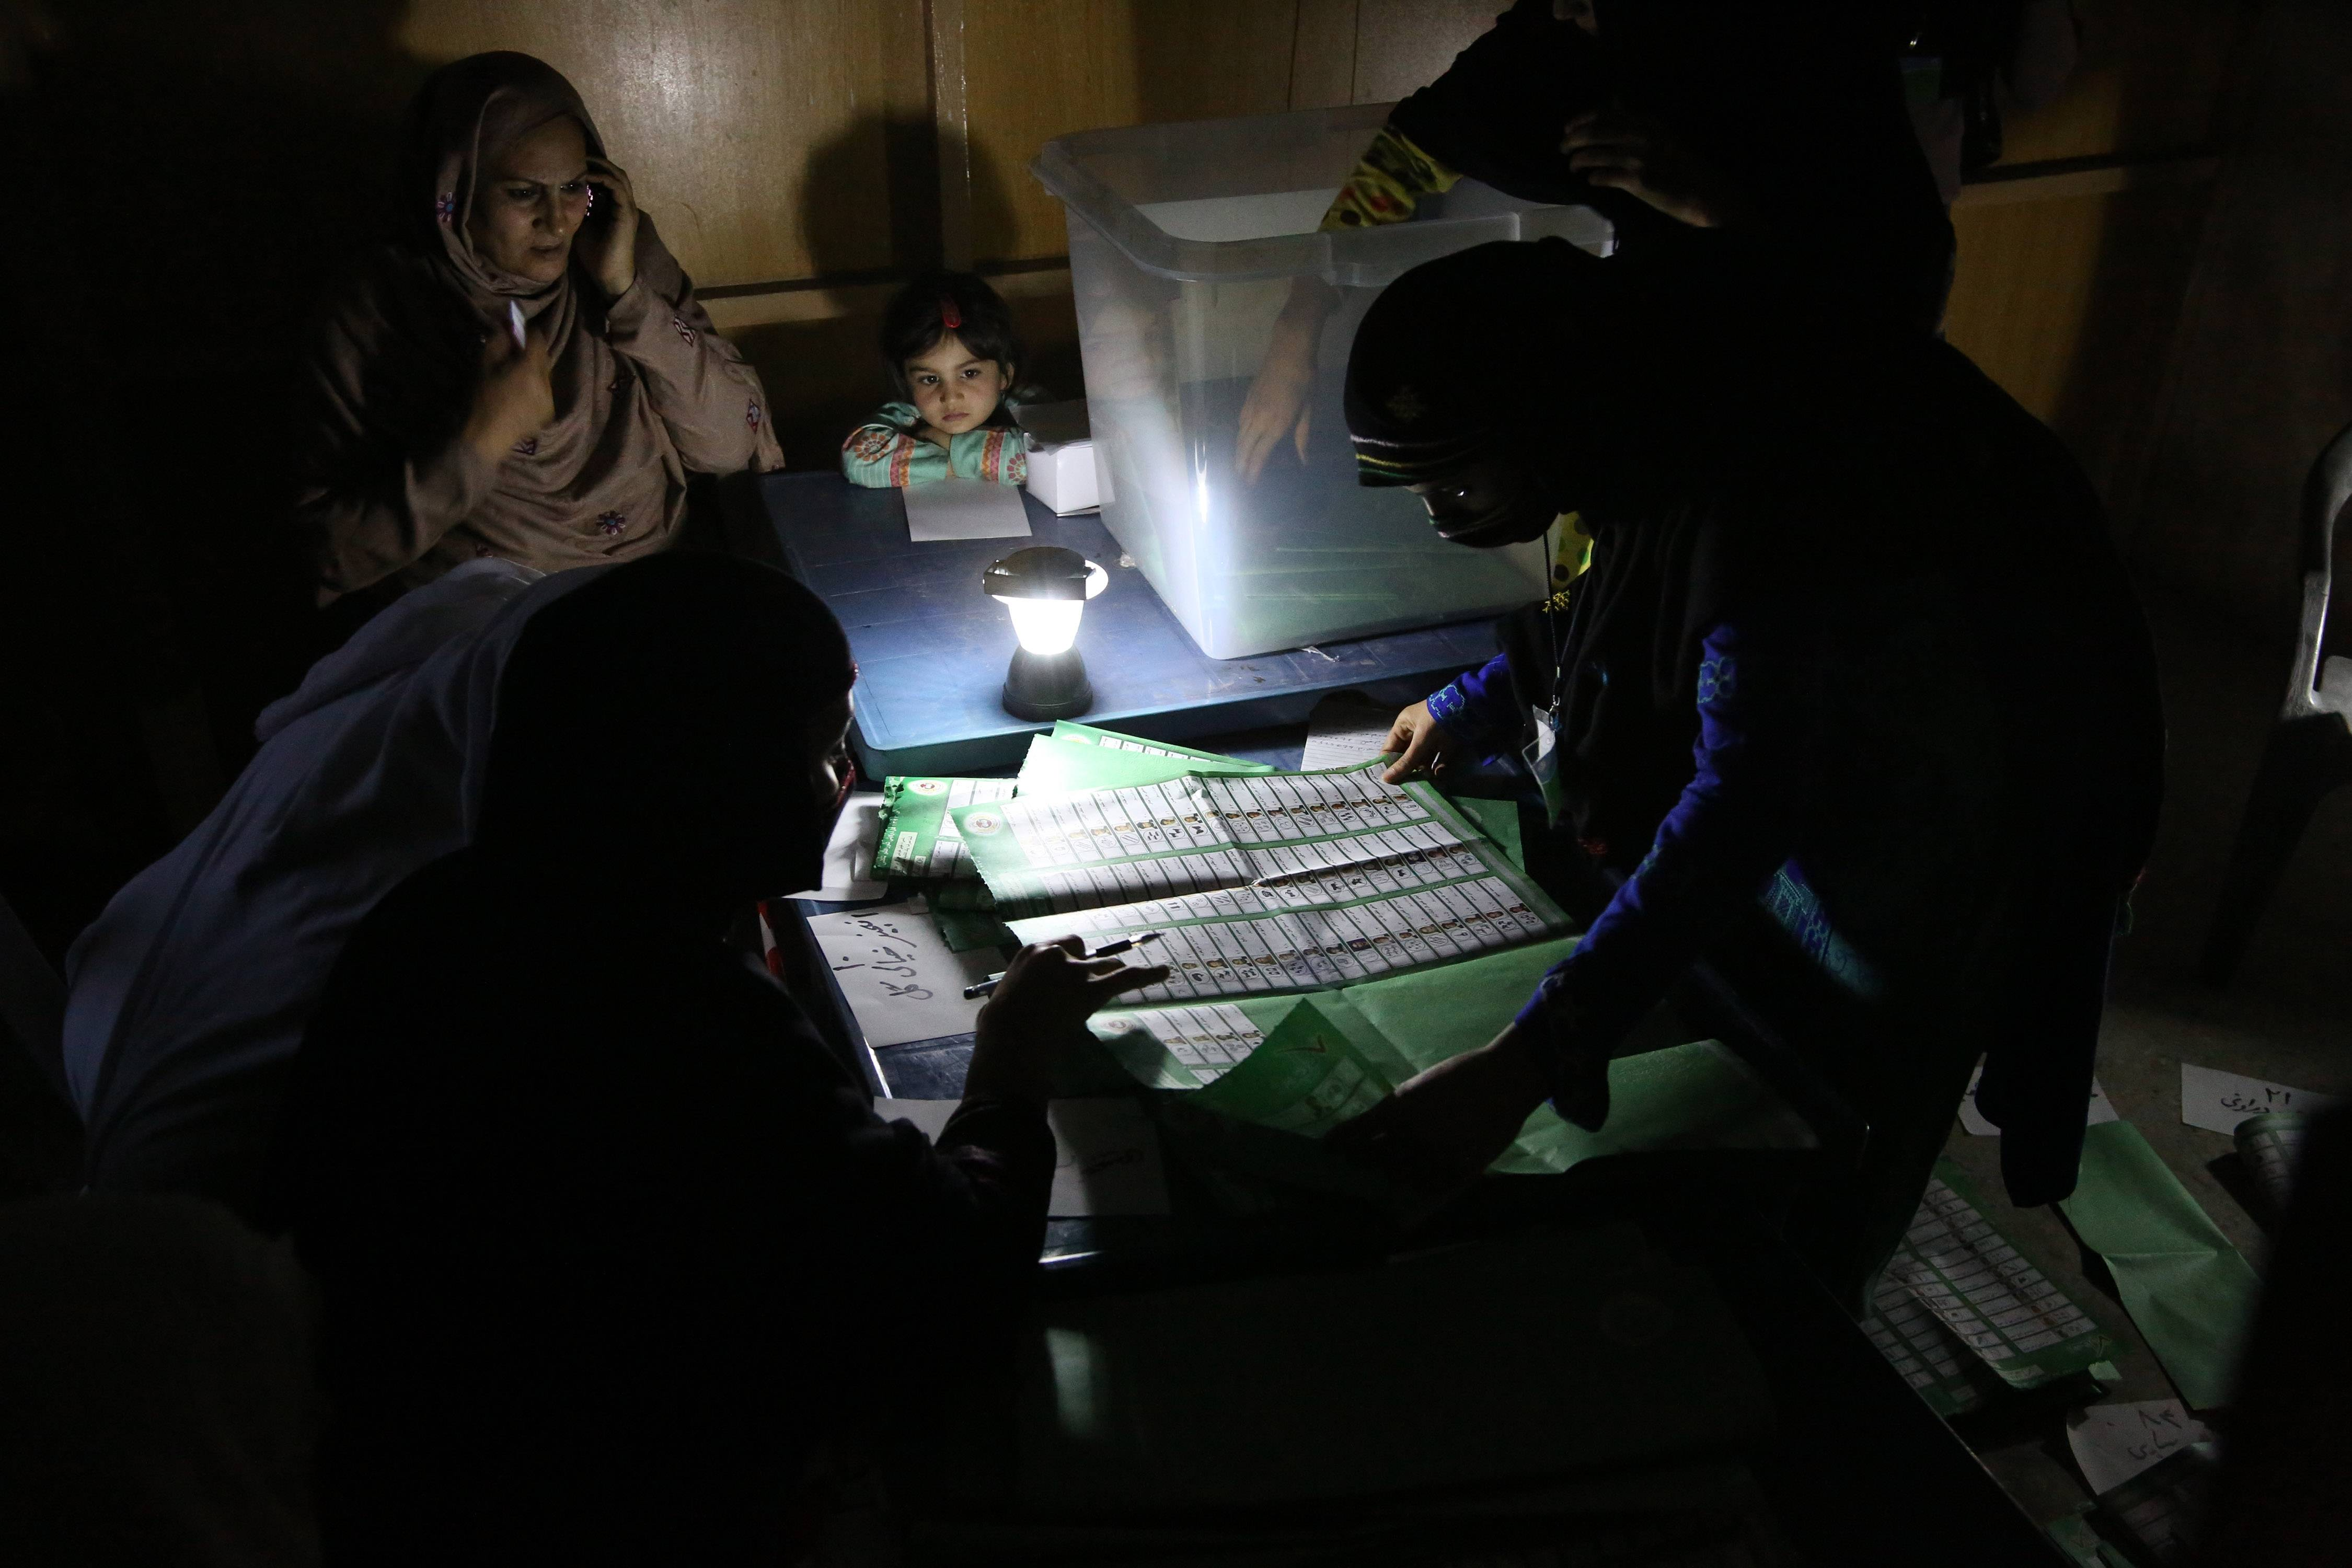 Afghan election workers on April 5 count ballots by the light of a lantern at a polling station in Jalalabad, east of Kabul, Afghanistan.